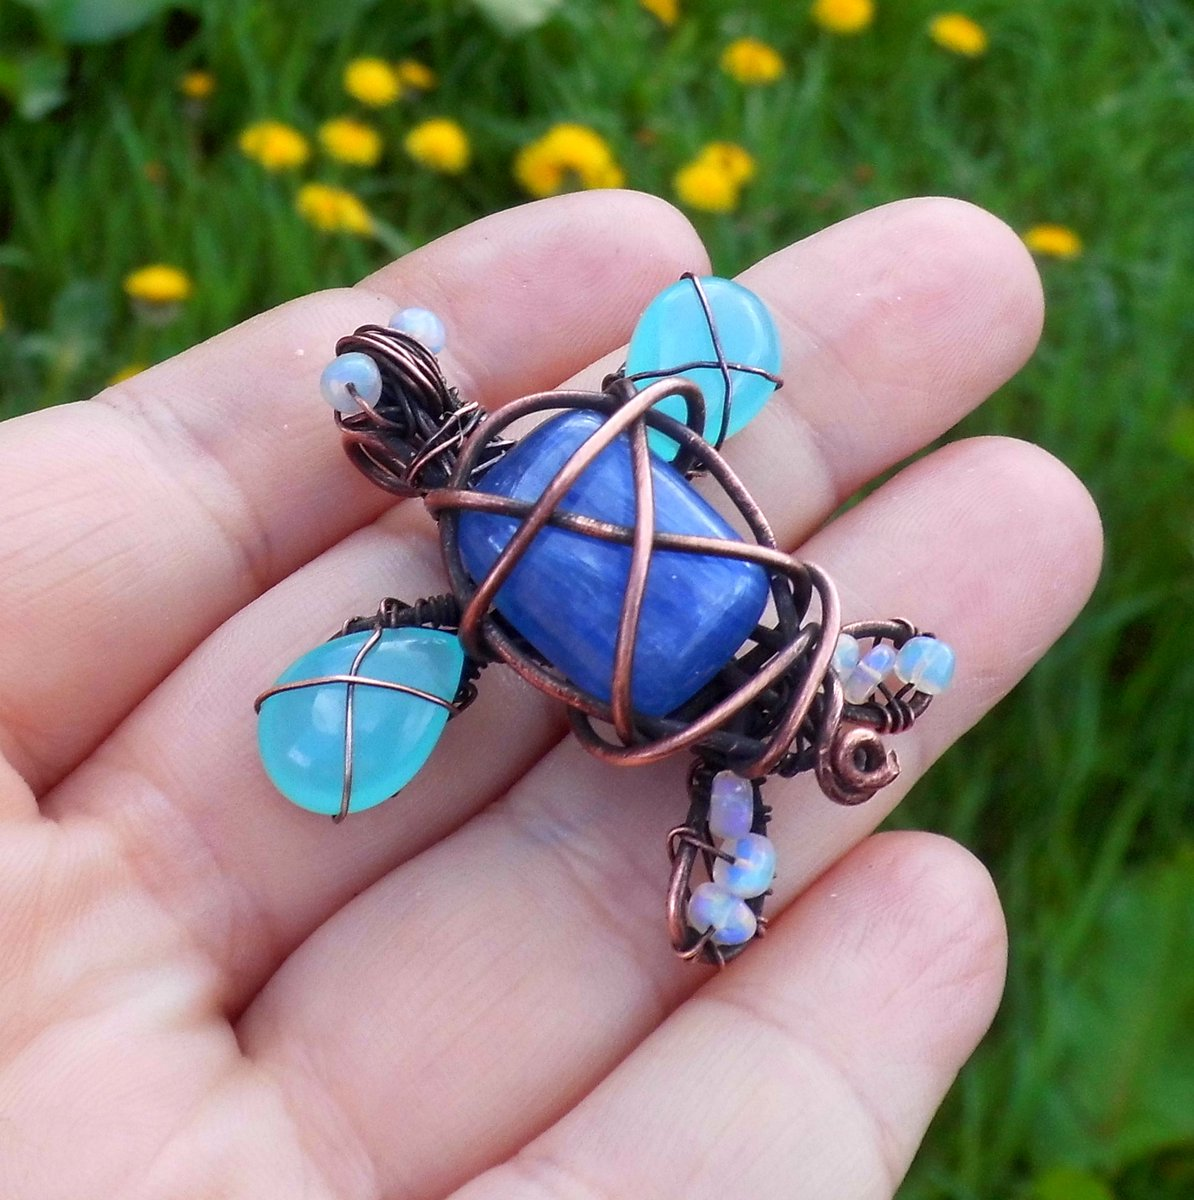 This pendant is now available http CharismaCrystals etsy com mothersdaygift Seaturtle womaninbiz handmadejewelry .